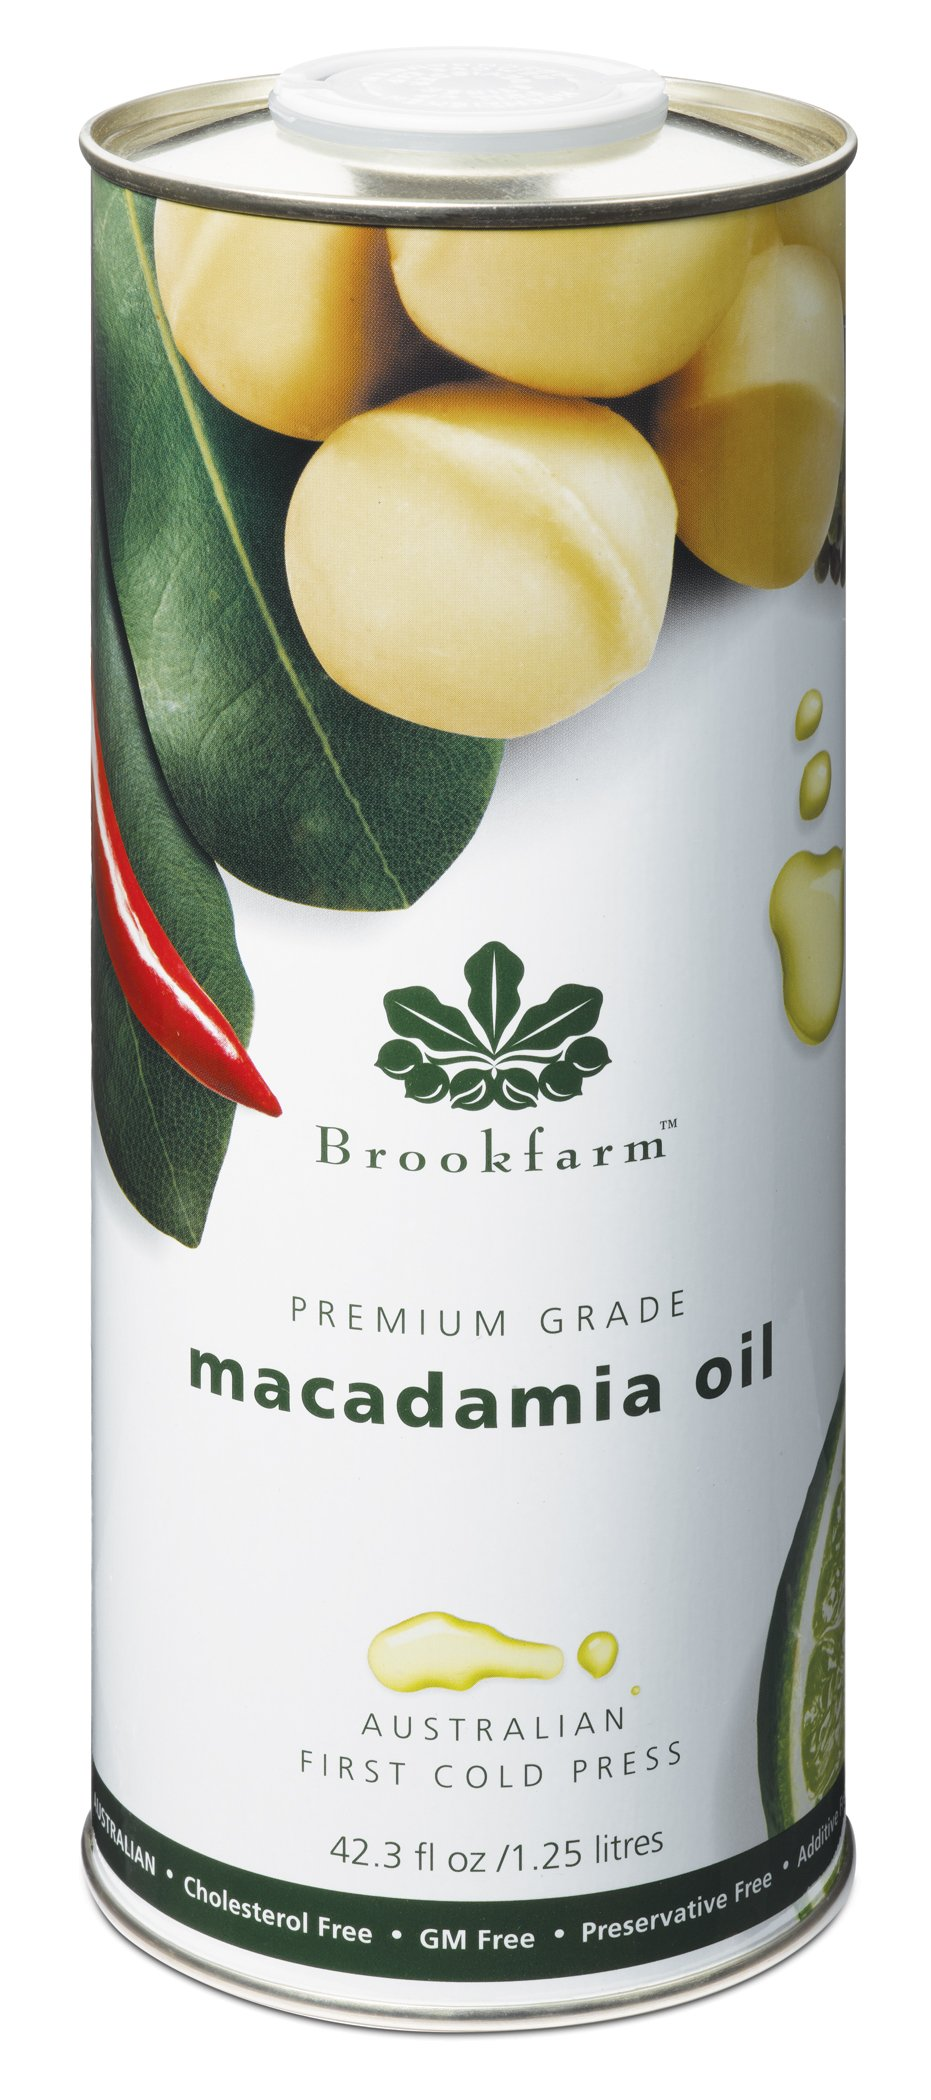 Brookfarm Premium-Grade Natural Macadamia Oil, 42.3 fl oz (1.25l)